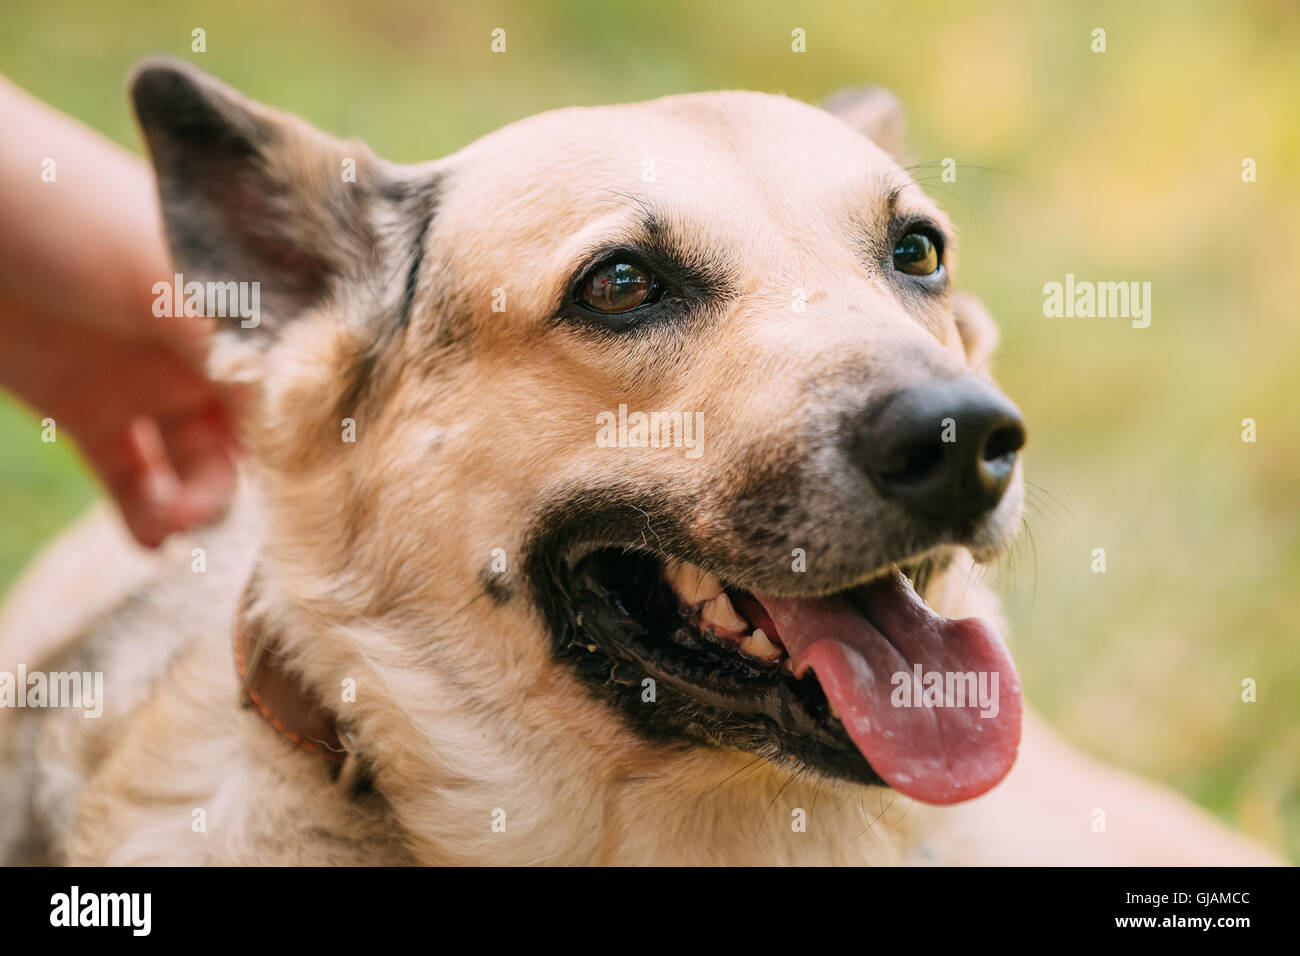 Close Up Of Medium Size Mongrel Mixed Breed Short-Haired Yellow Adult Female Dog With Tongue In Collar On Green Stock Photo